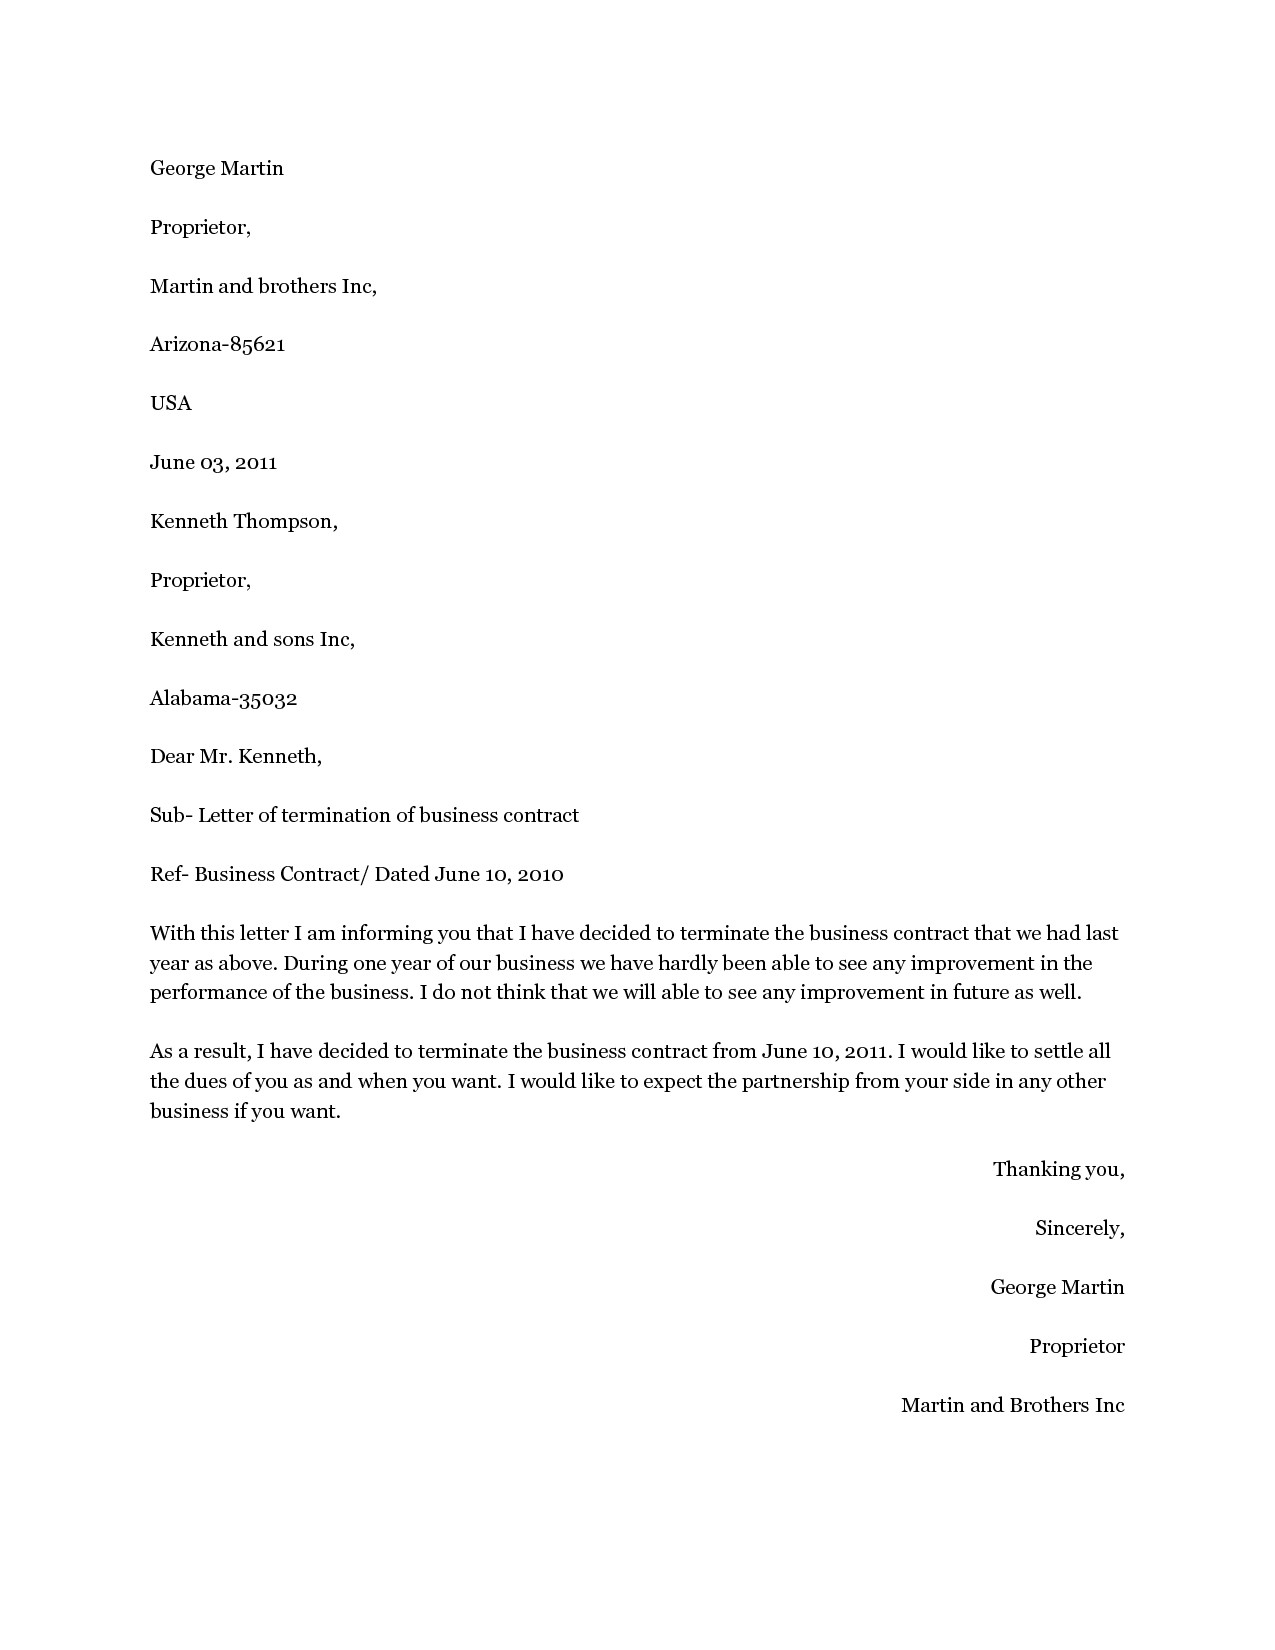 Contract Cancellation Letter Template Free - 33 Lovely Cancellation Letter Sample